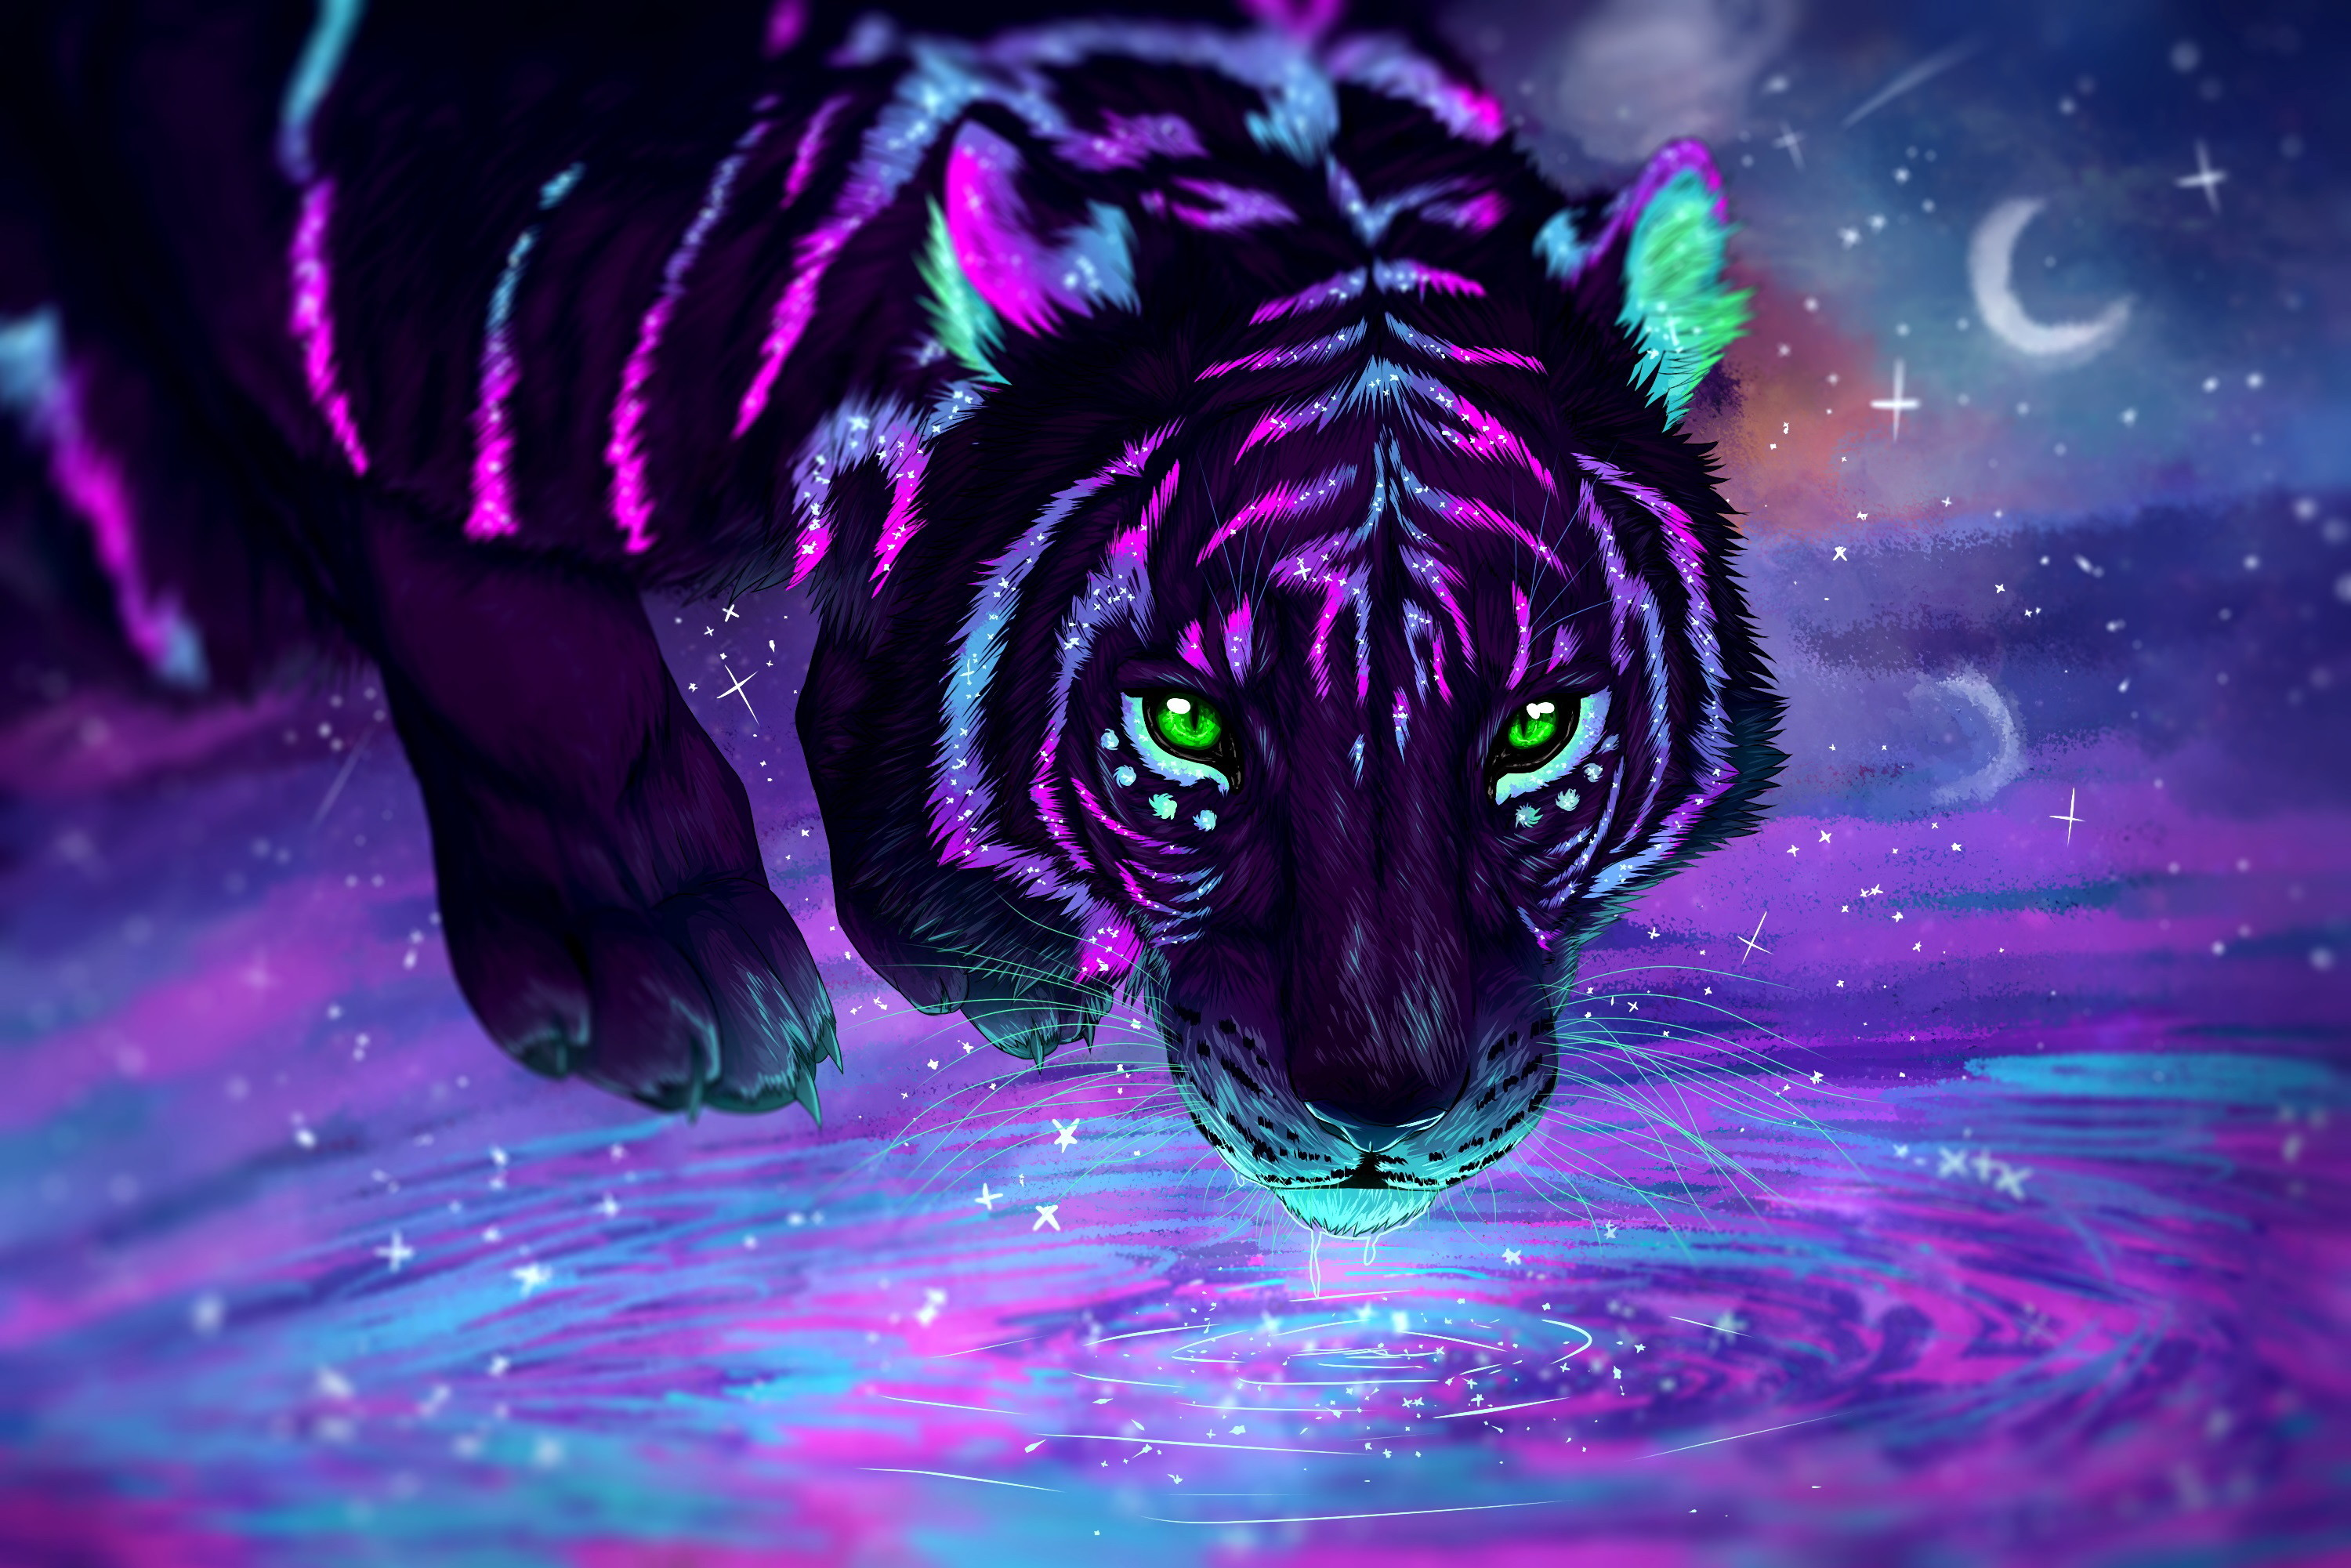 Res: 3000x2001, Fantastic neon tiger with green eyes at the watering hole